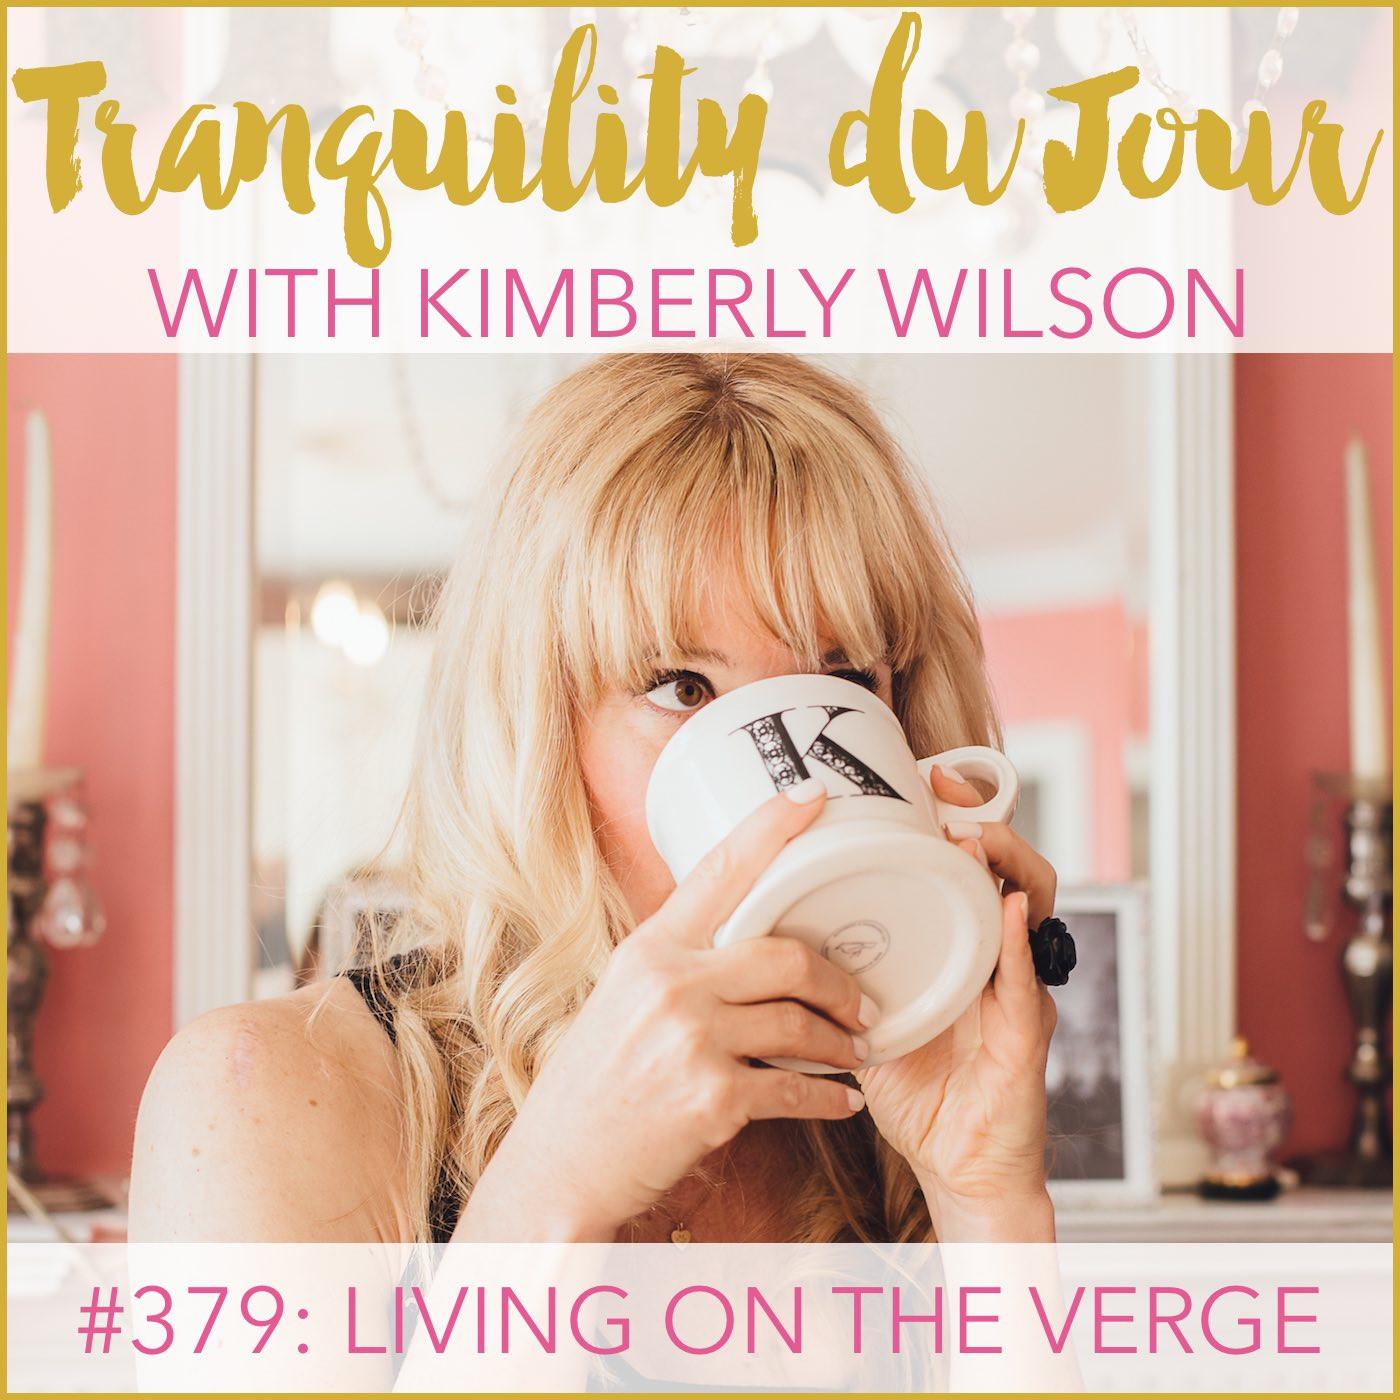 Tranquility du Jour #379: Living on the Verge